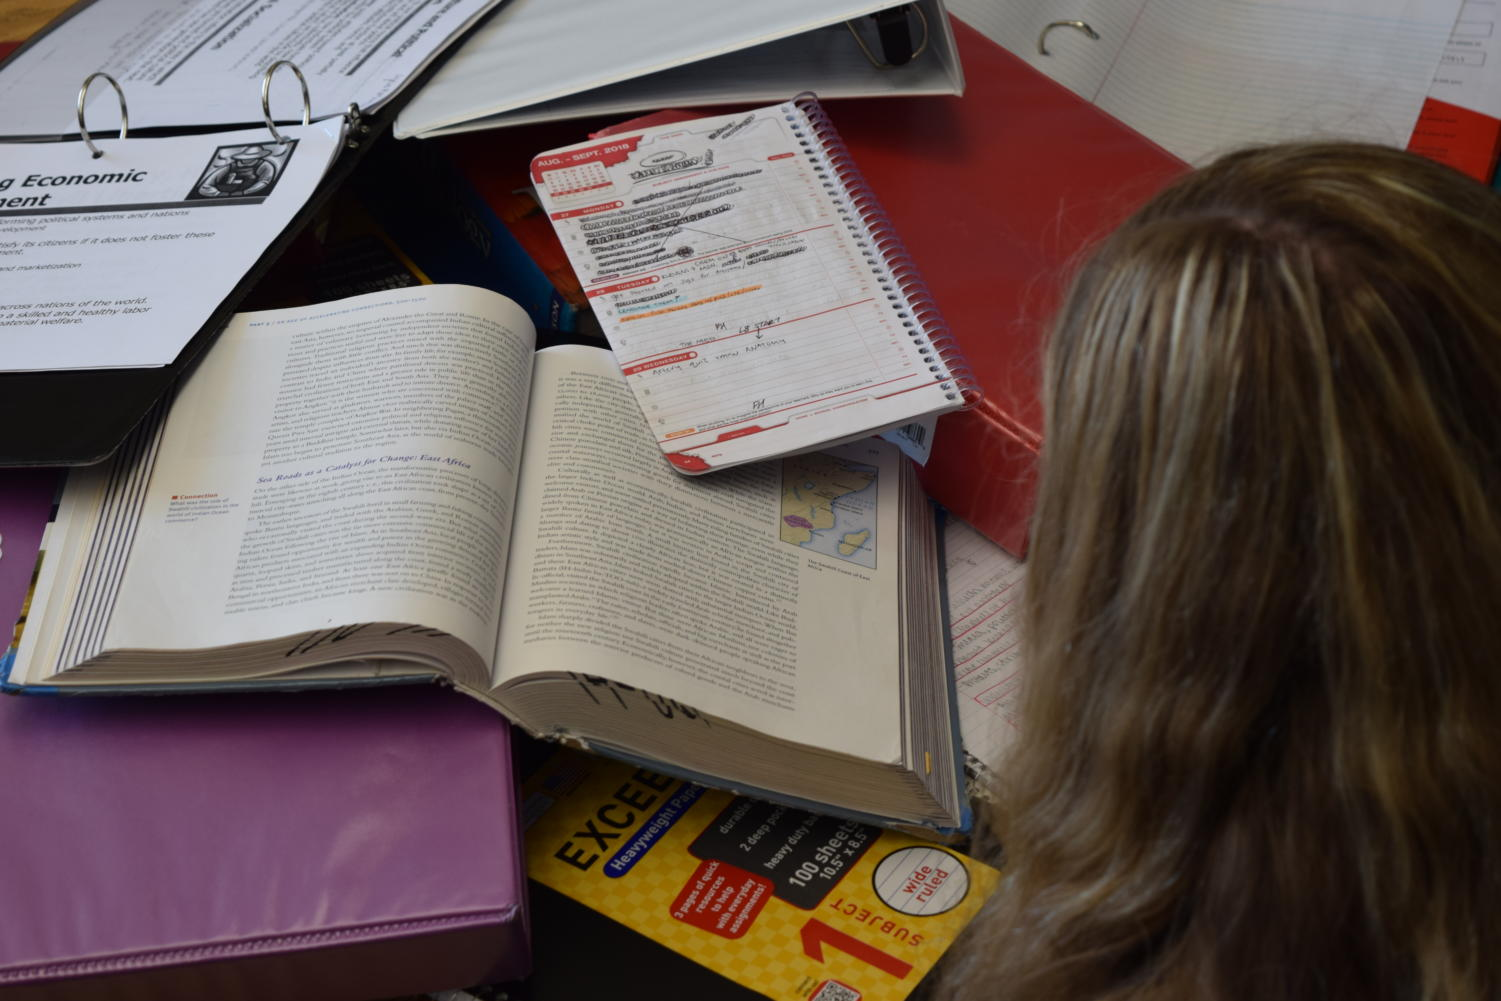 A student looks on at an array of school materials.